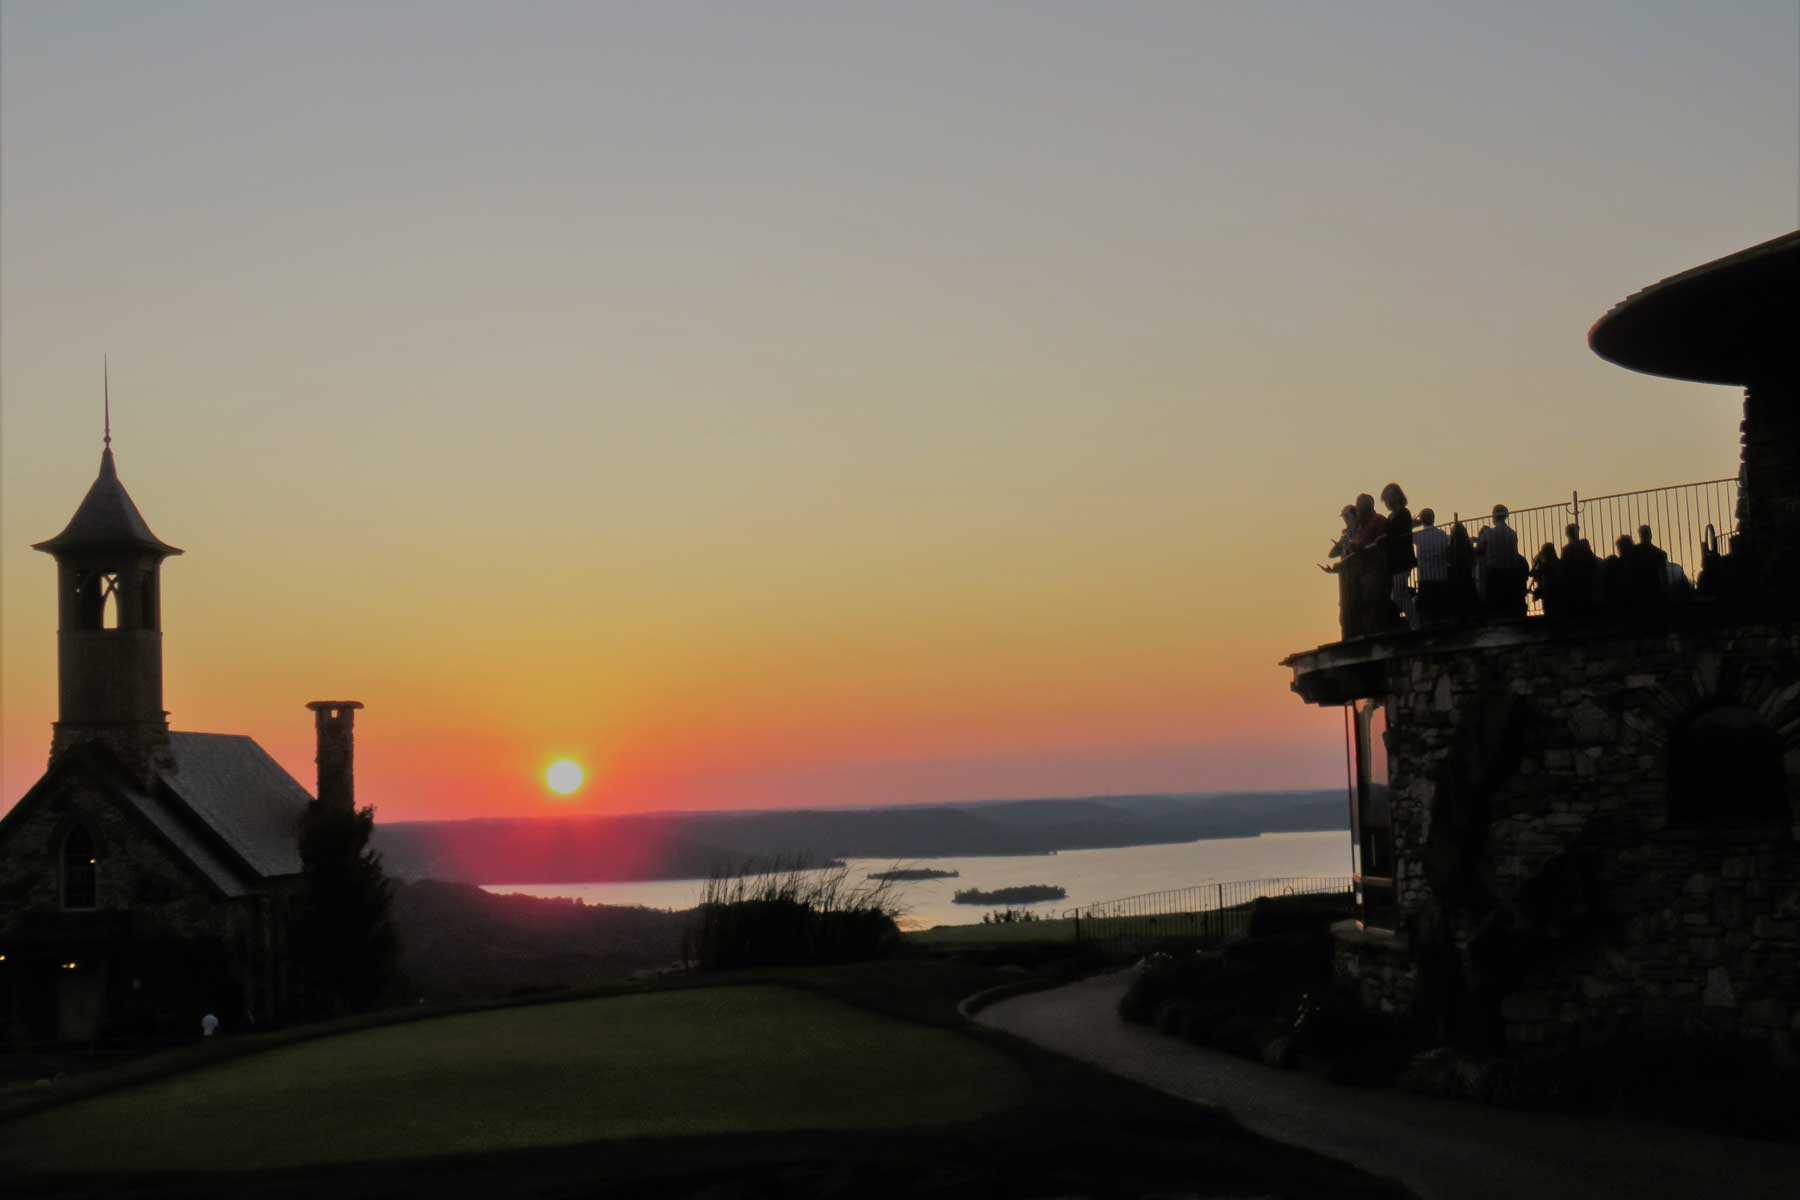 Top of the Rock, Chapel of Ozarks, Table Rock Lake, sunset at Ridgedale, Missouri